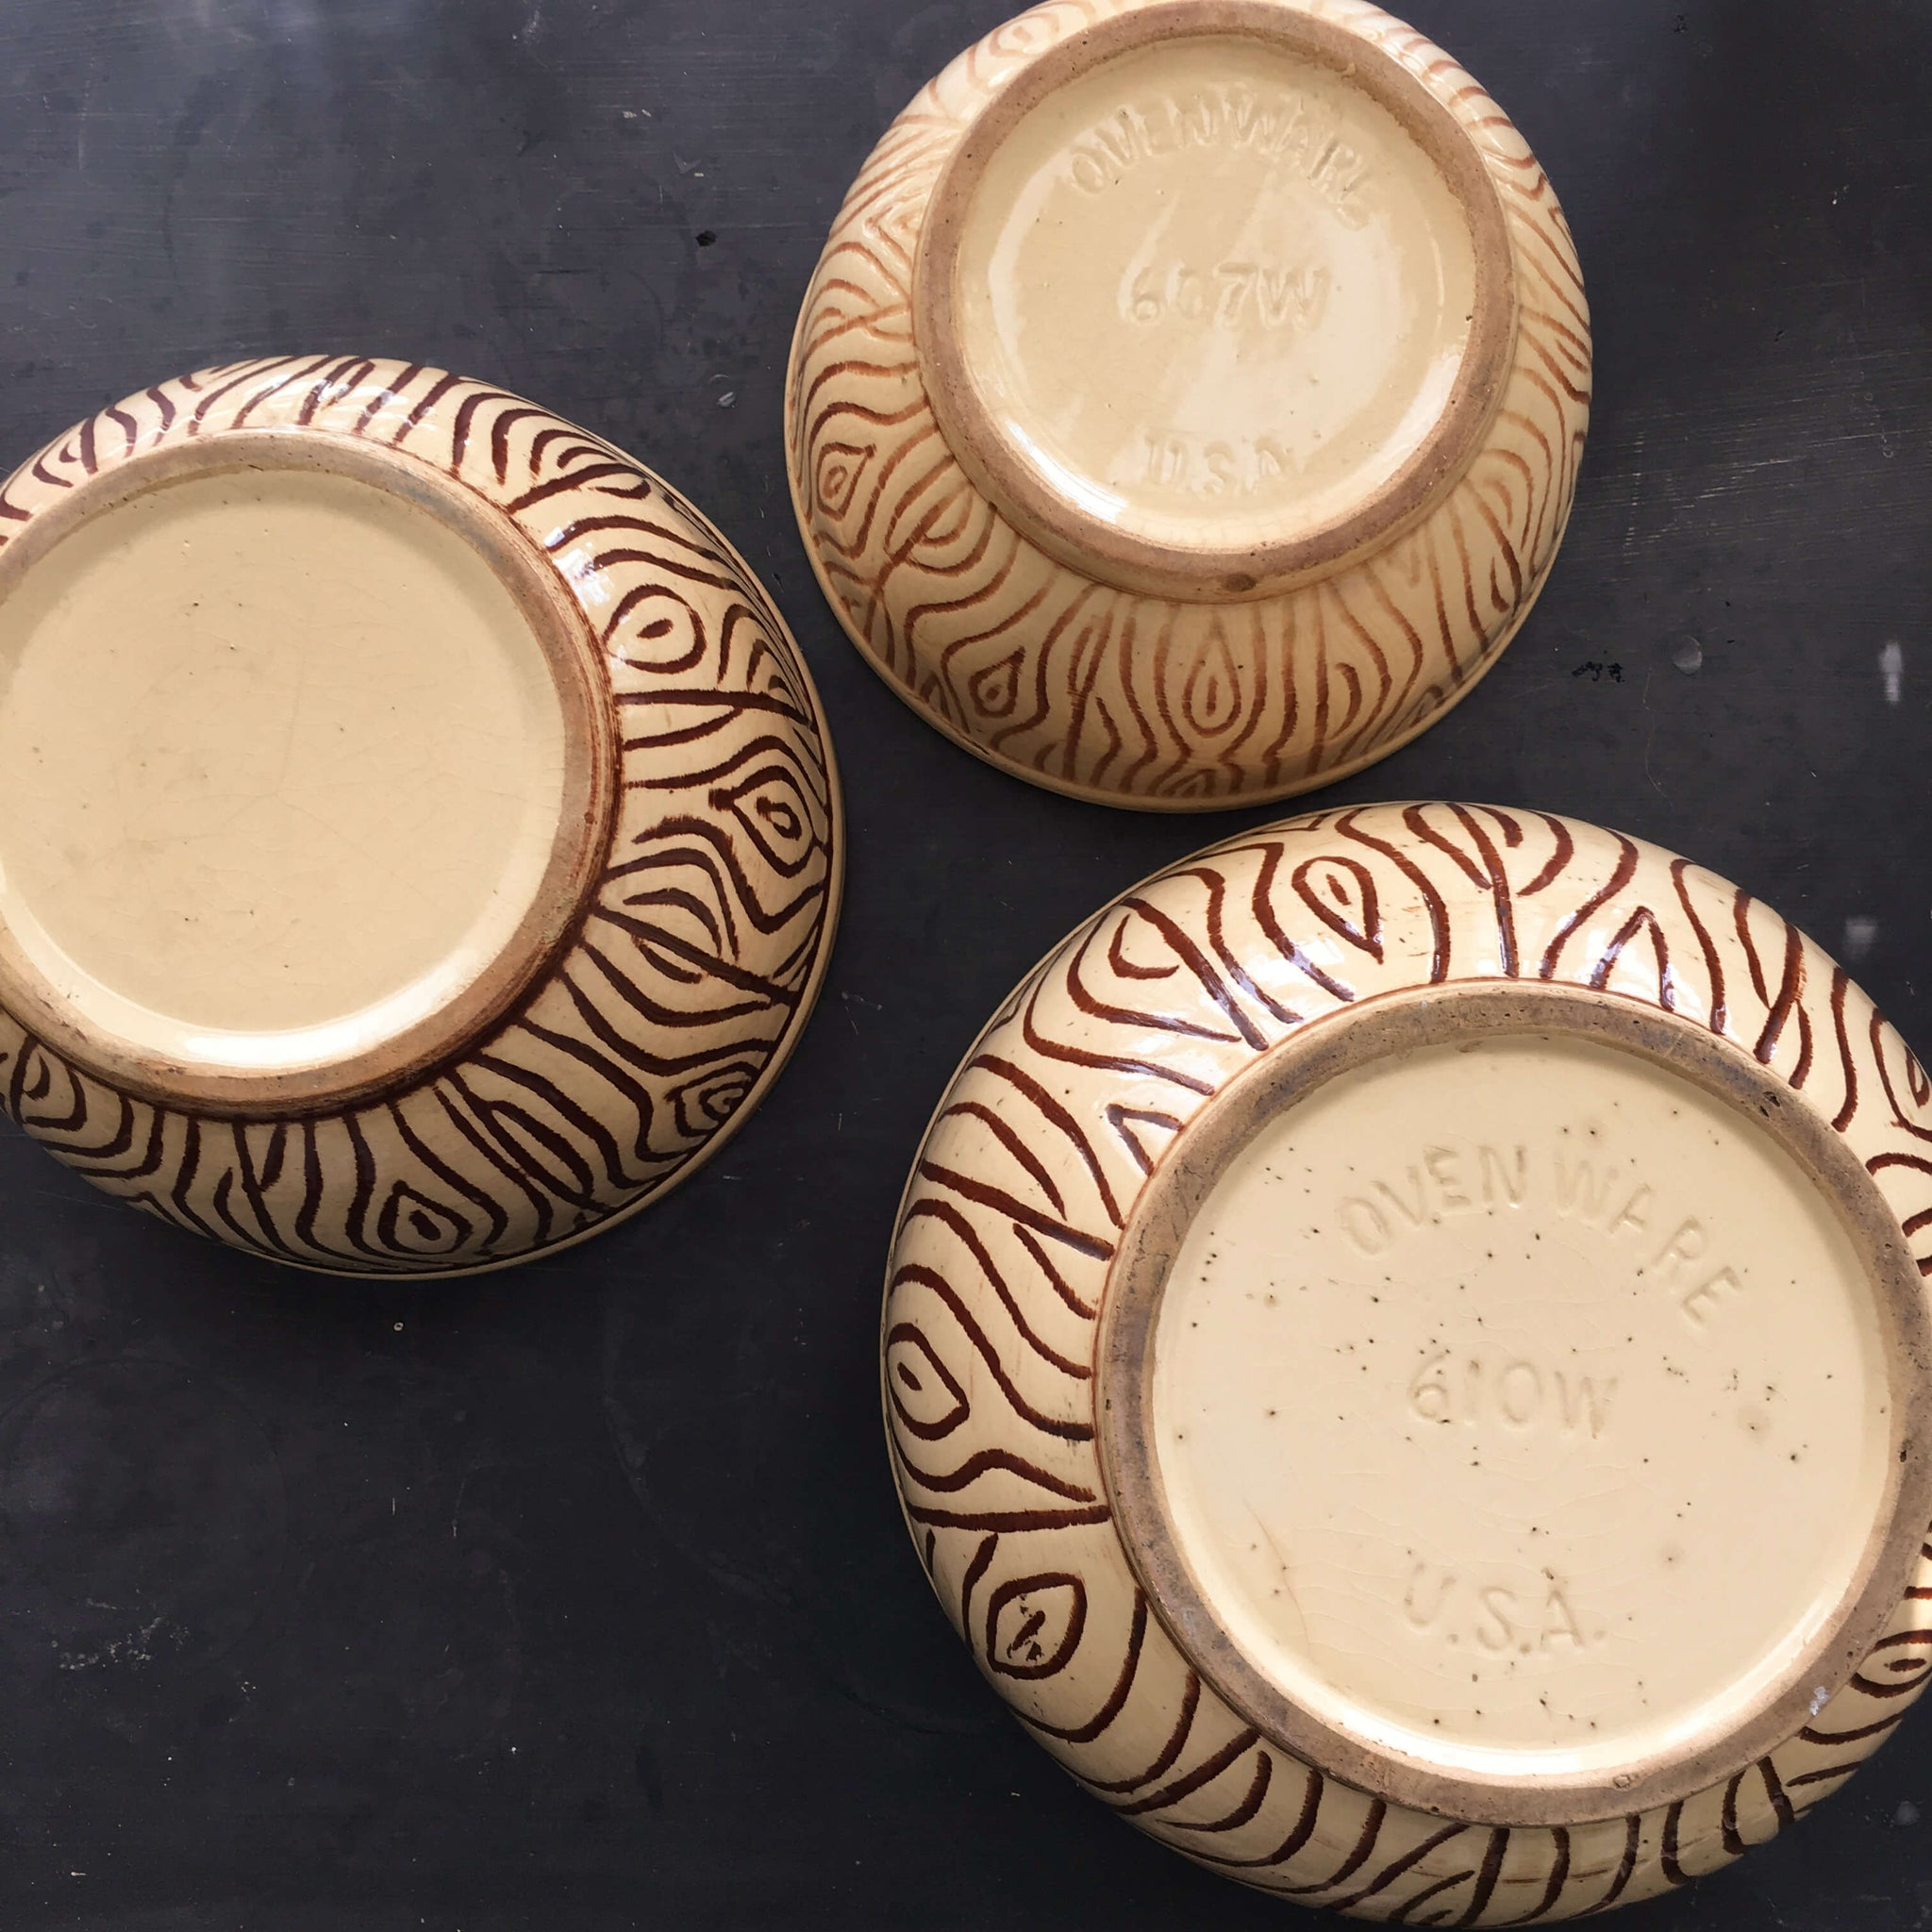 Vintage Watt Wood Grain Mixing Bowls - Very Rare Set of Three Faux Bois Style Nesting Bowls circa 1940s